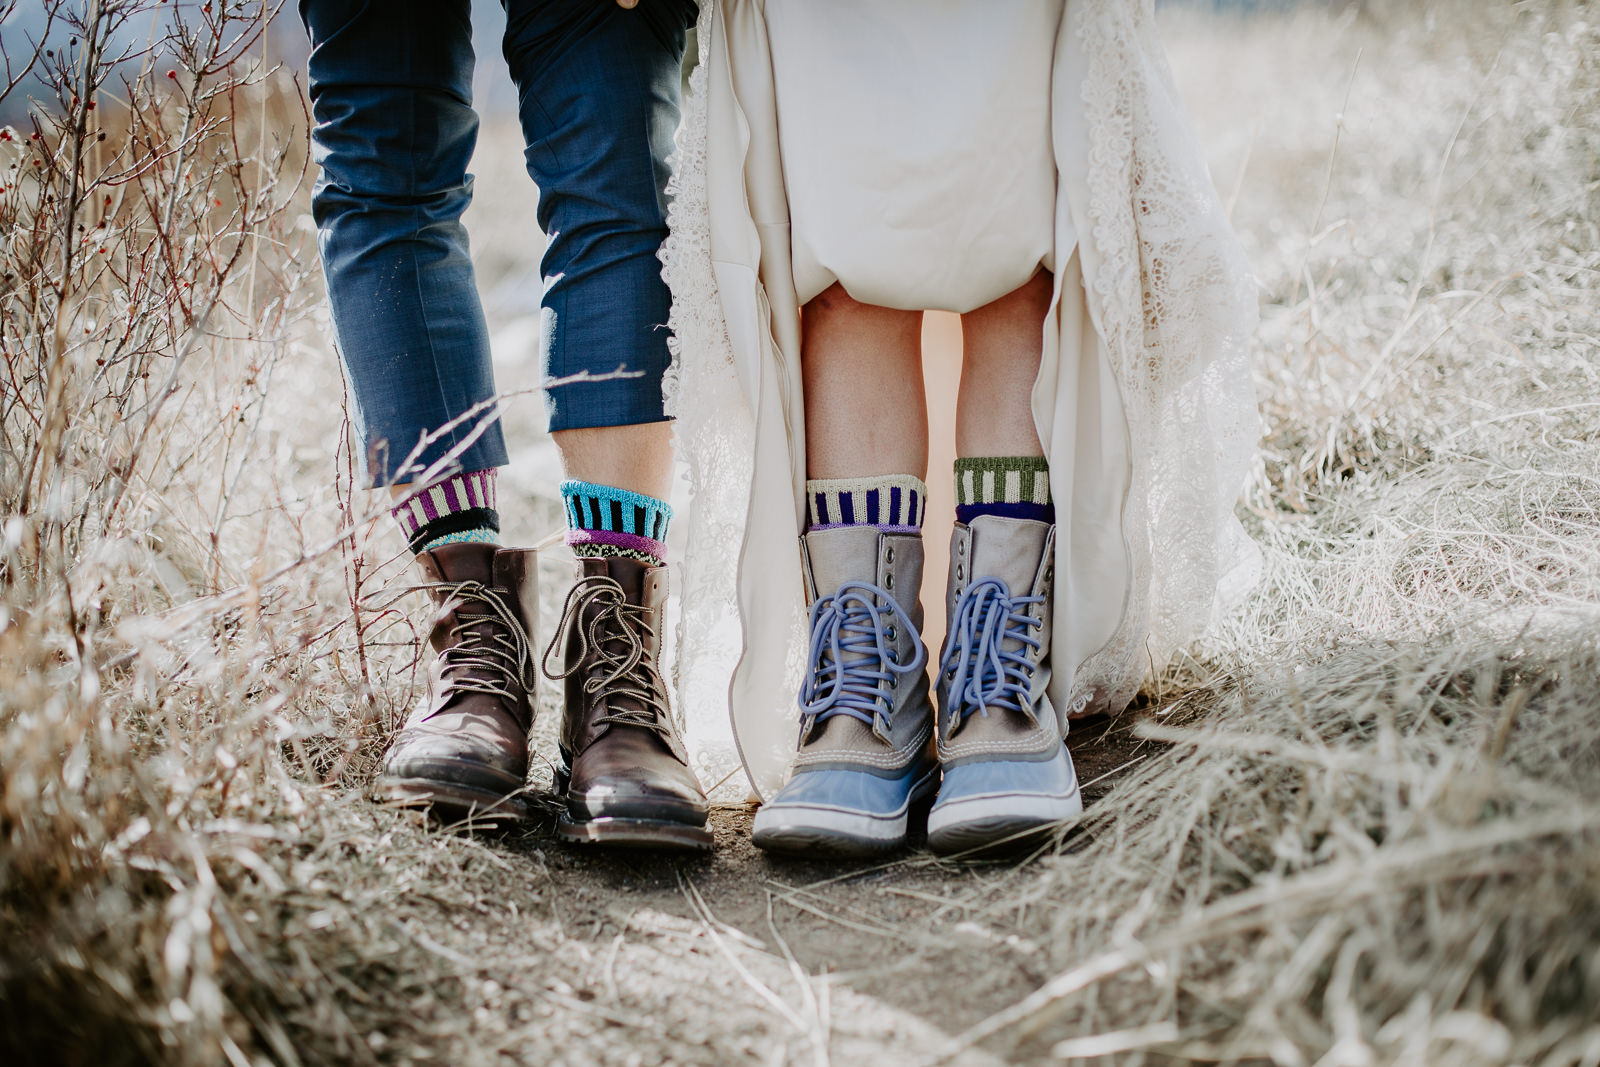 Footwear of bride and groom up close where the bride is wearing snow boots